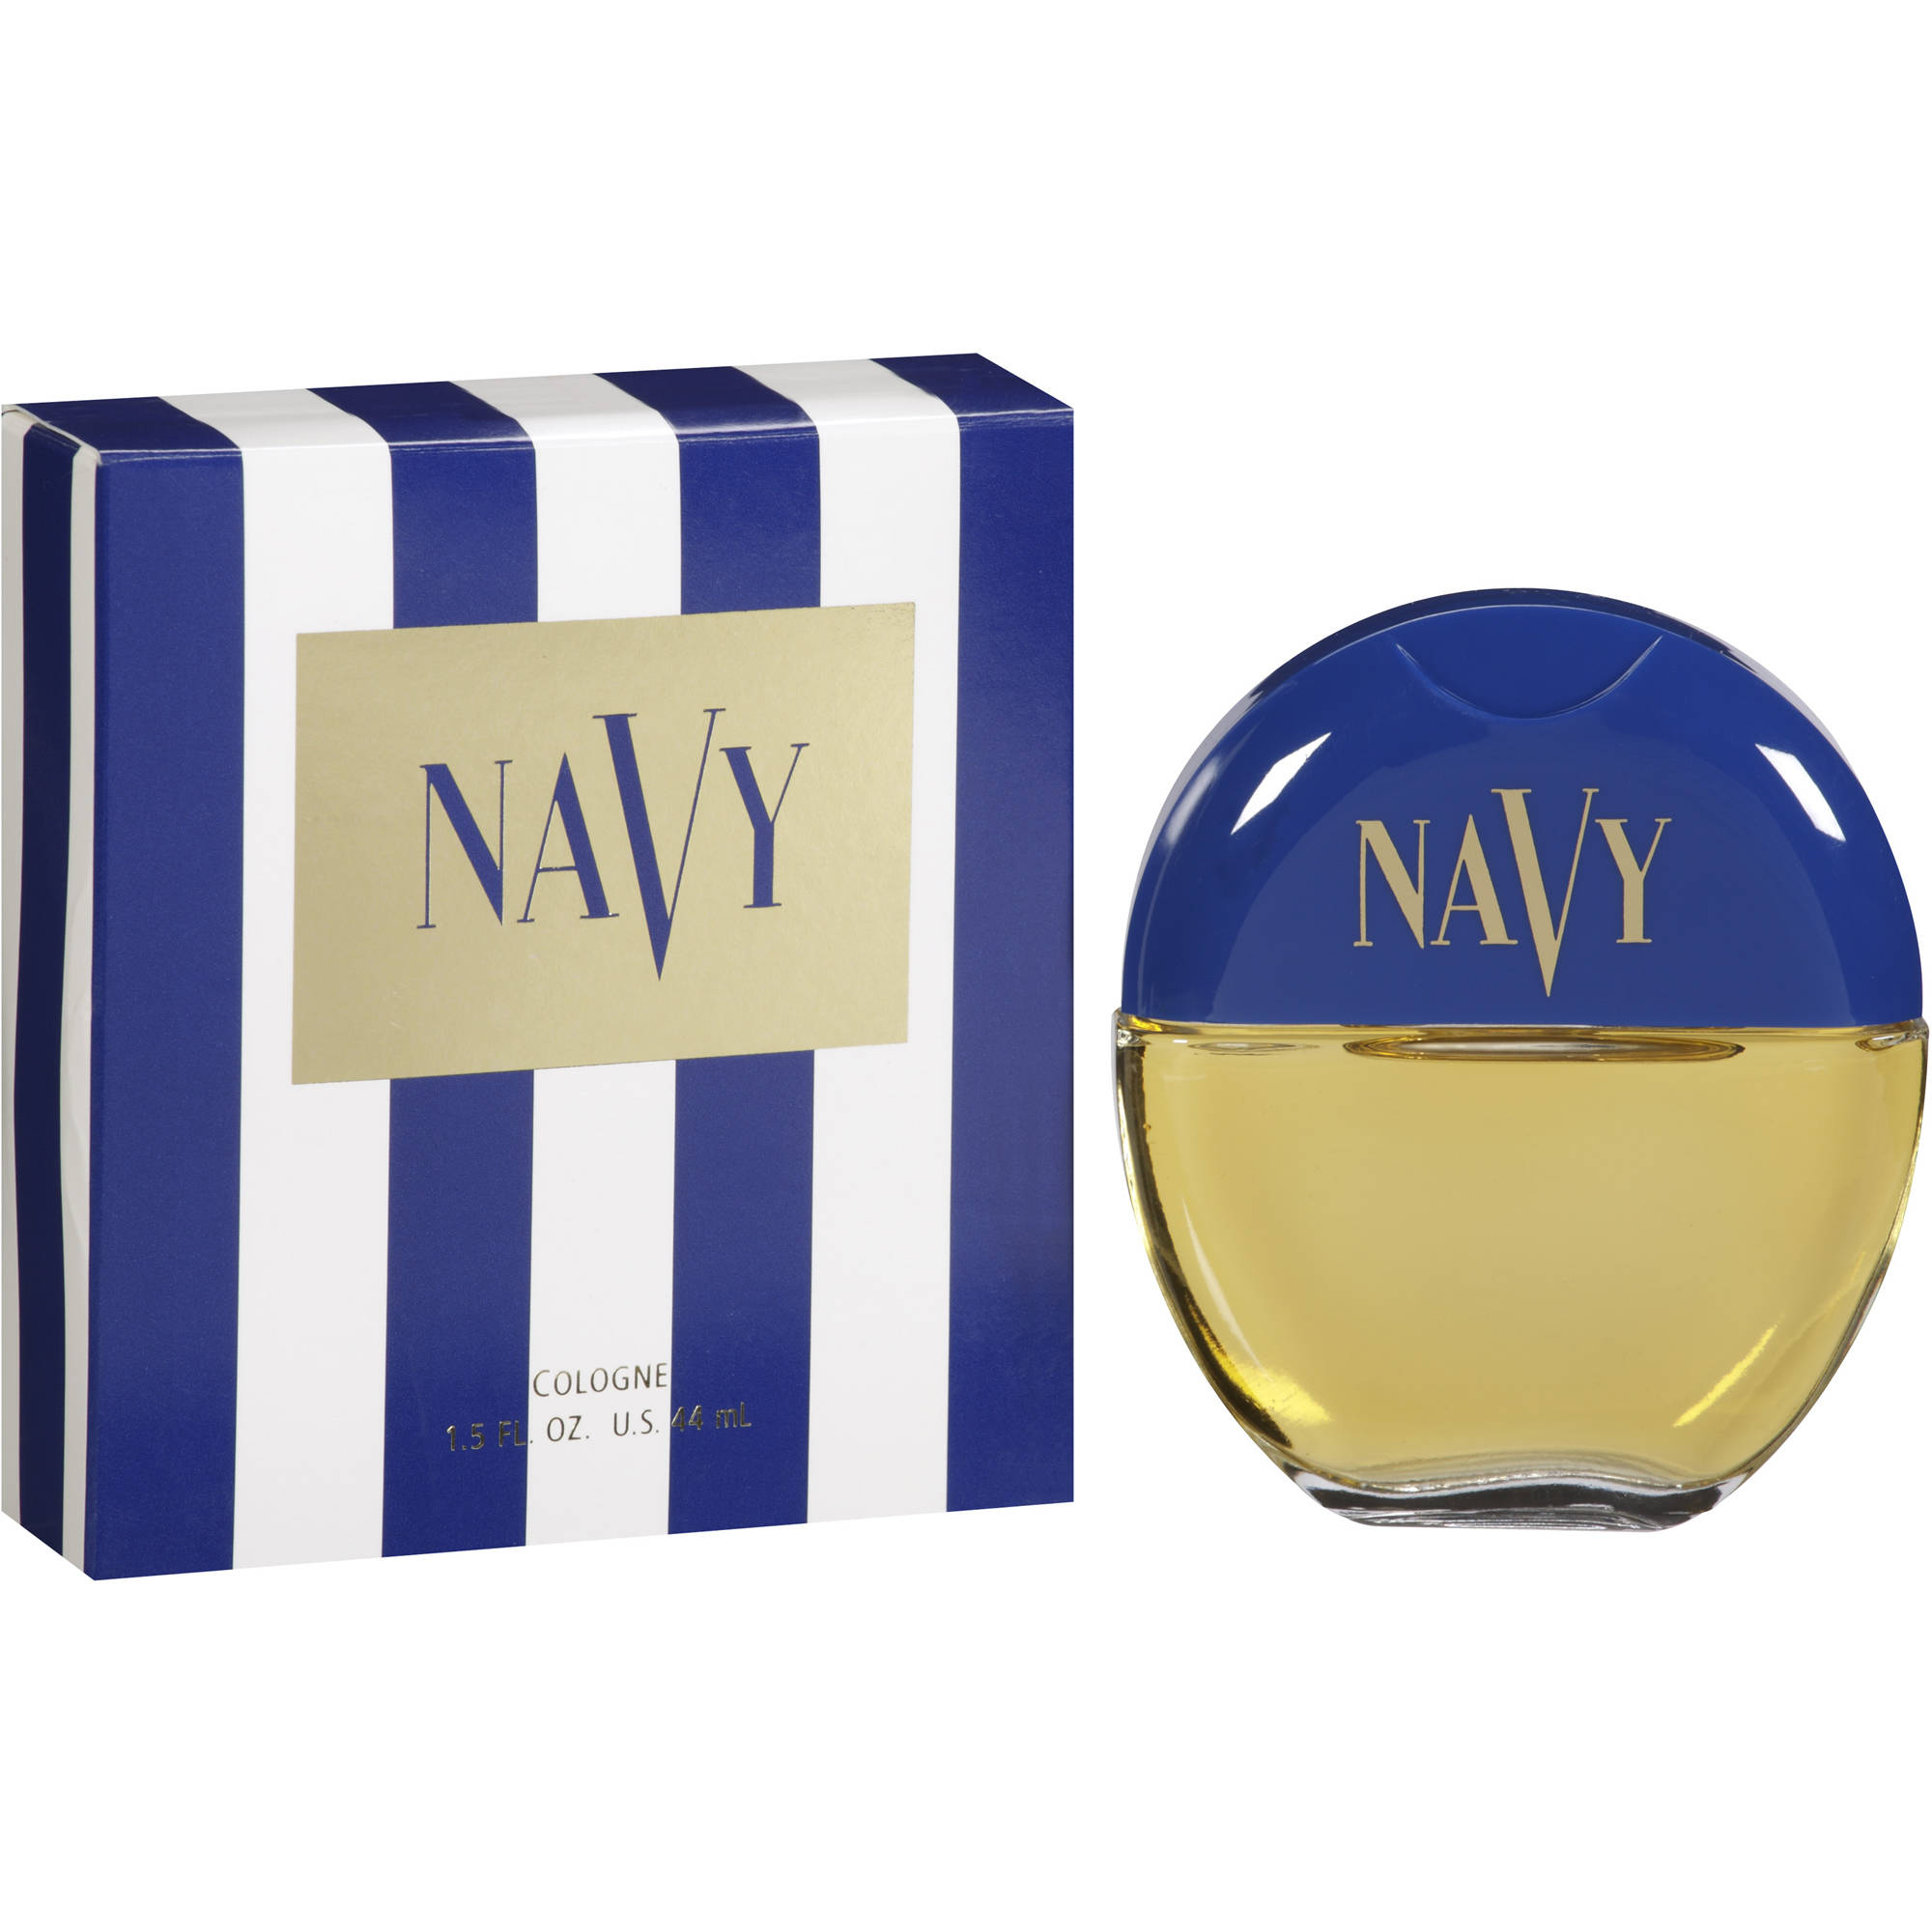 Navy by Dana for Women - 1.5 oz Cologne Spray